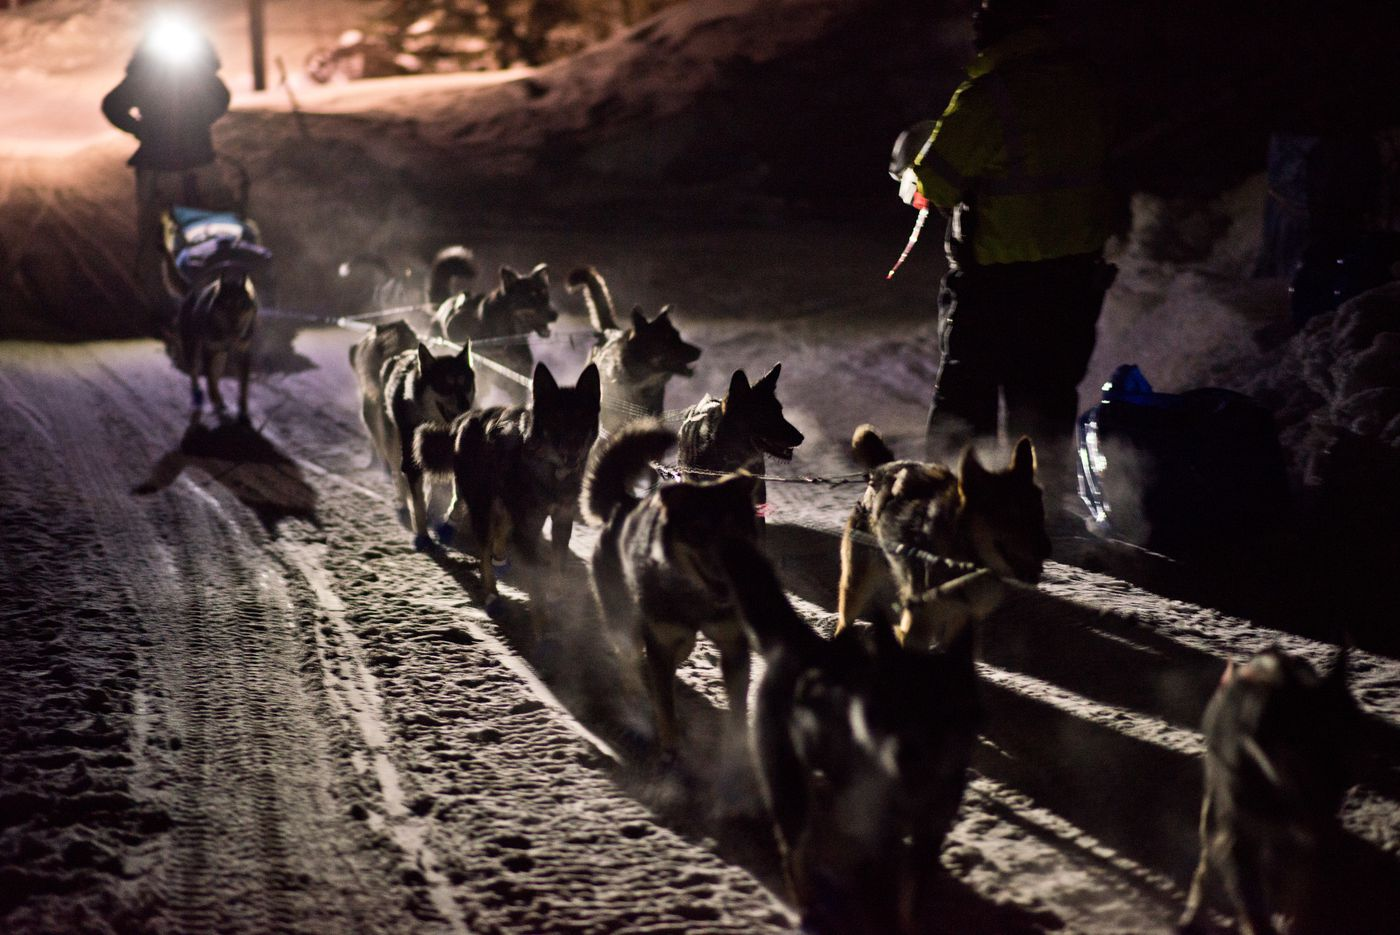 Musher Cody Strathe approaches the checker in Ruby. Iditarod Trail Sled Dog Race mushers reached the Yukon River at the village of Ruby on Friday, March 11, 2016.